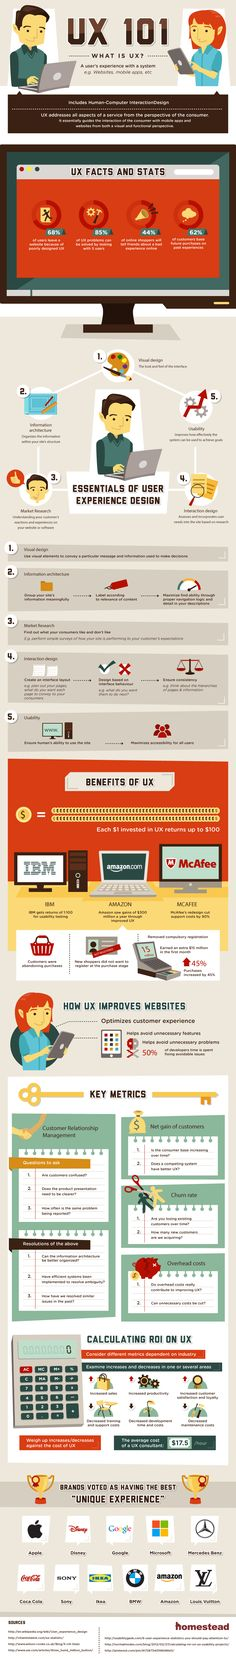 UX What is User Experience (UX)? | Infographic